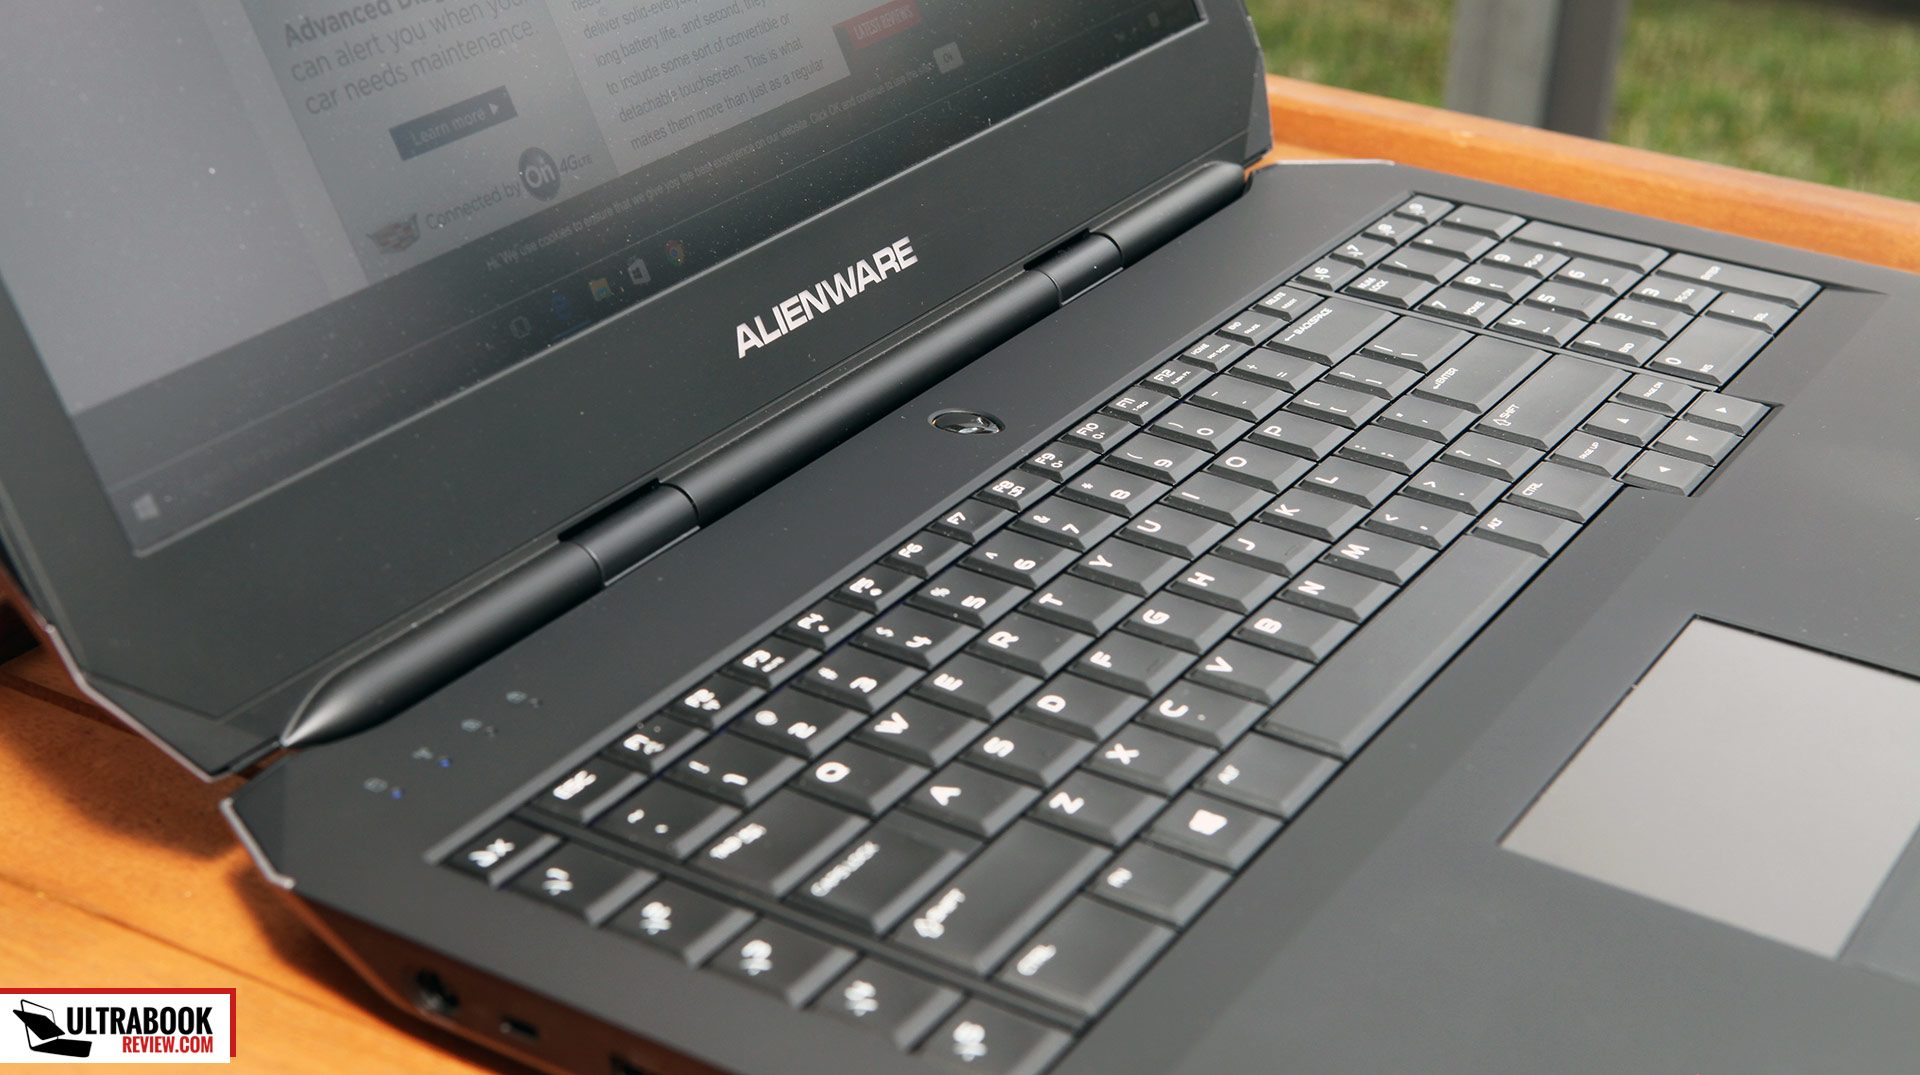 Dell Alienware 17 R3 review - high-performance gaming laptop